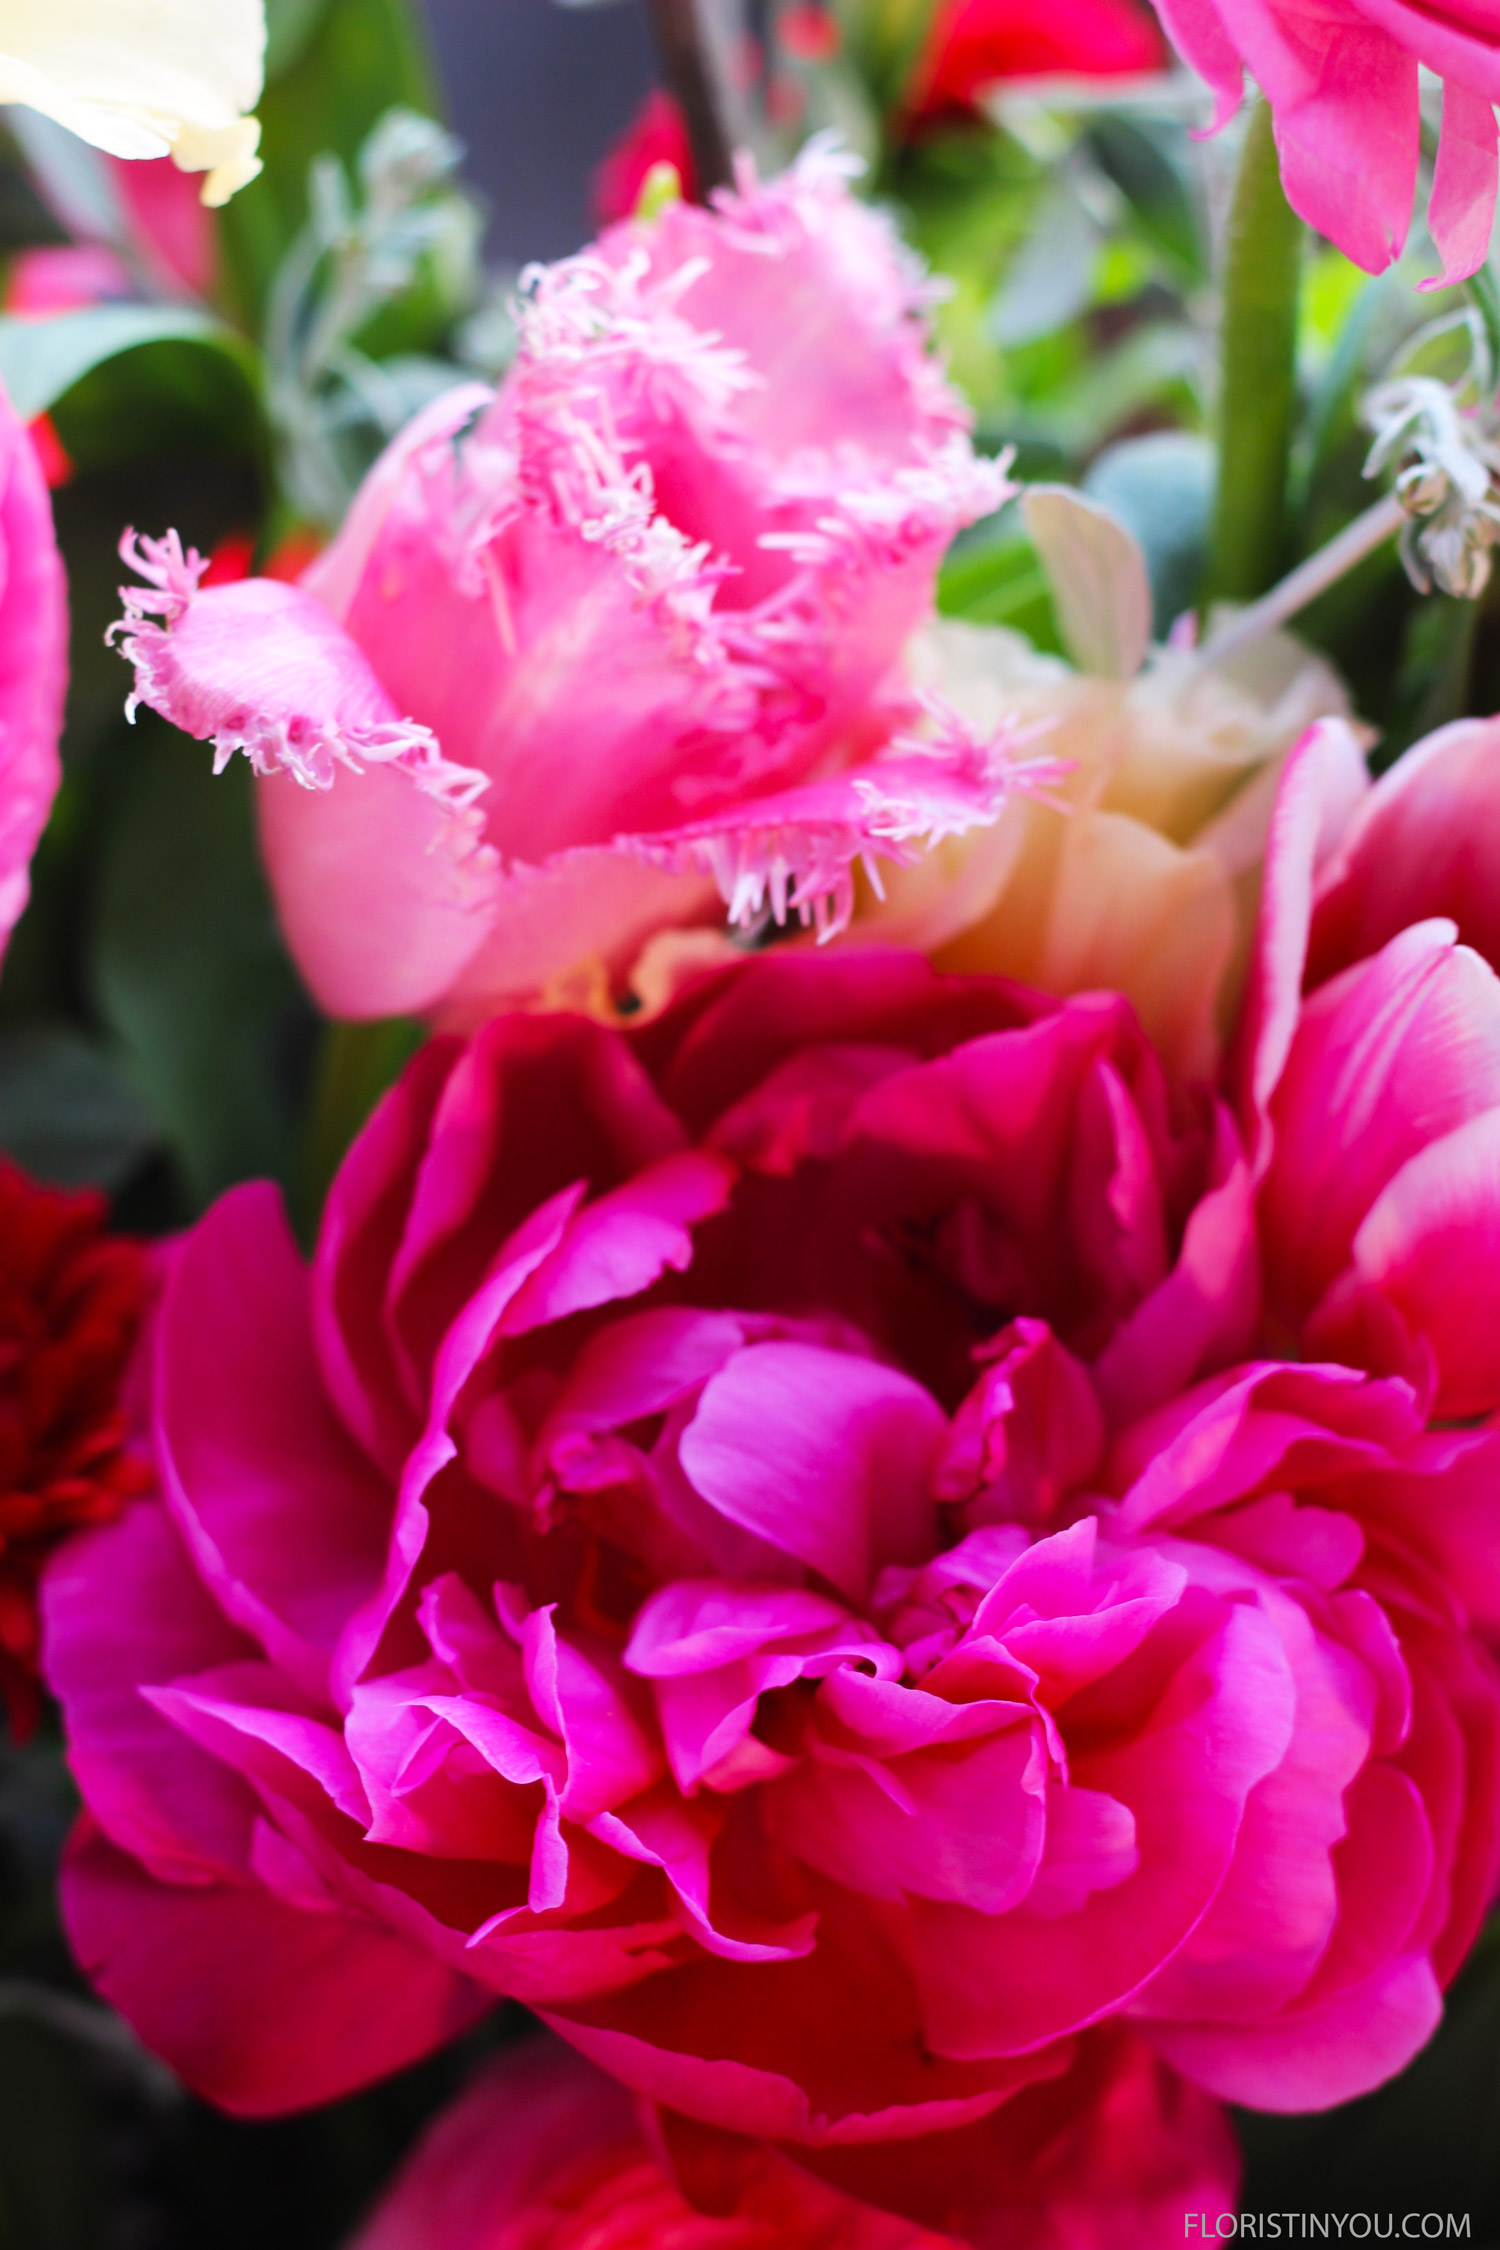 And fringed edged pink Parrot tulips. Adieu!